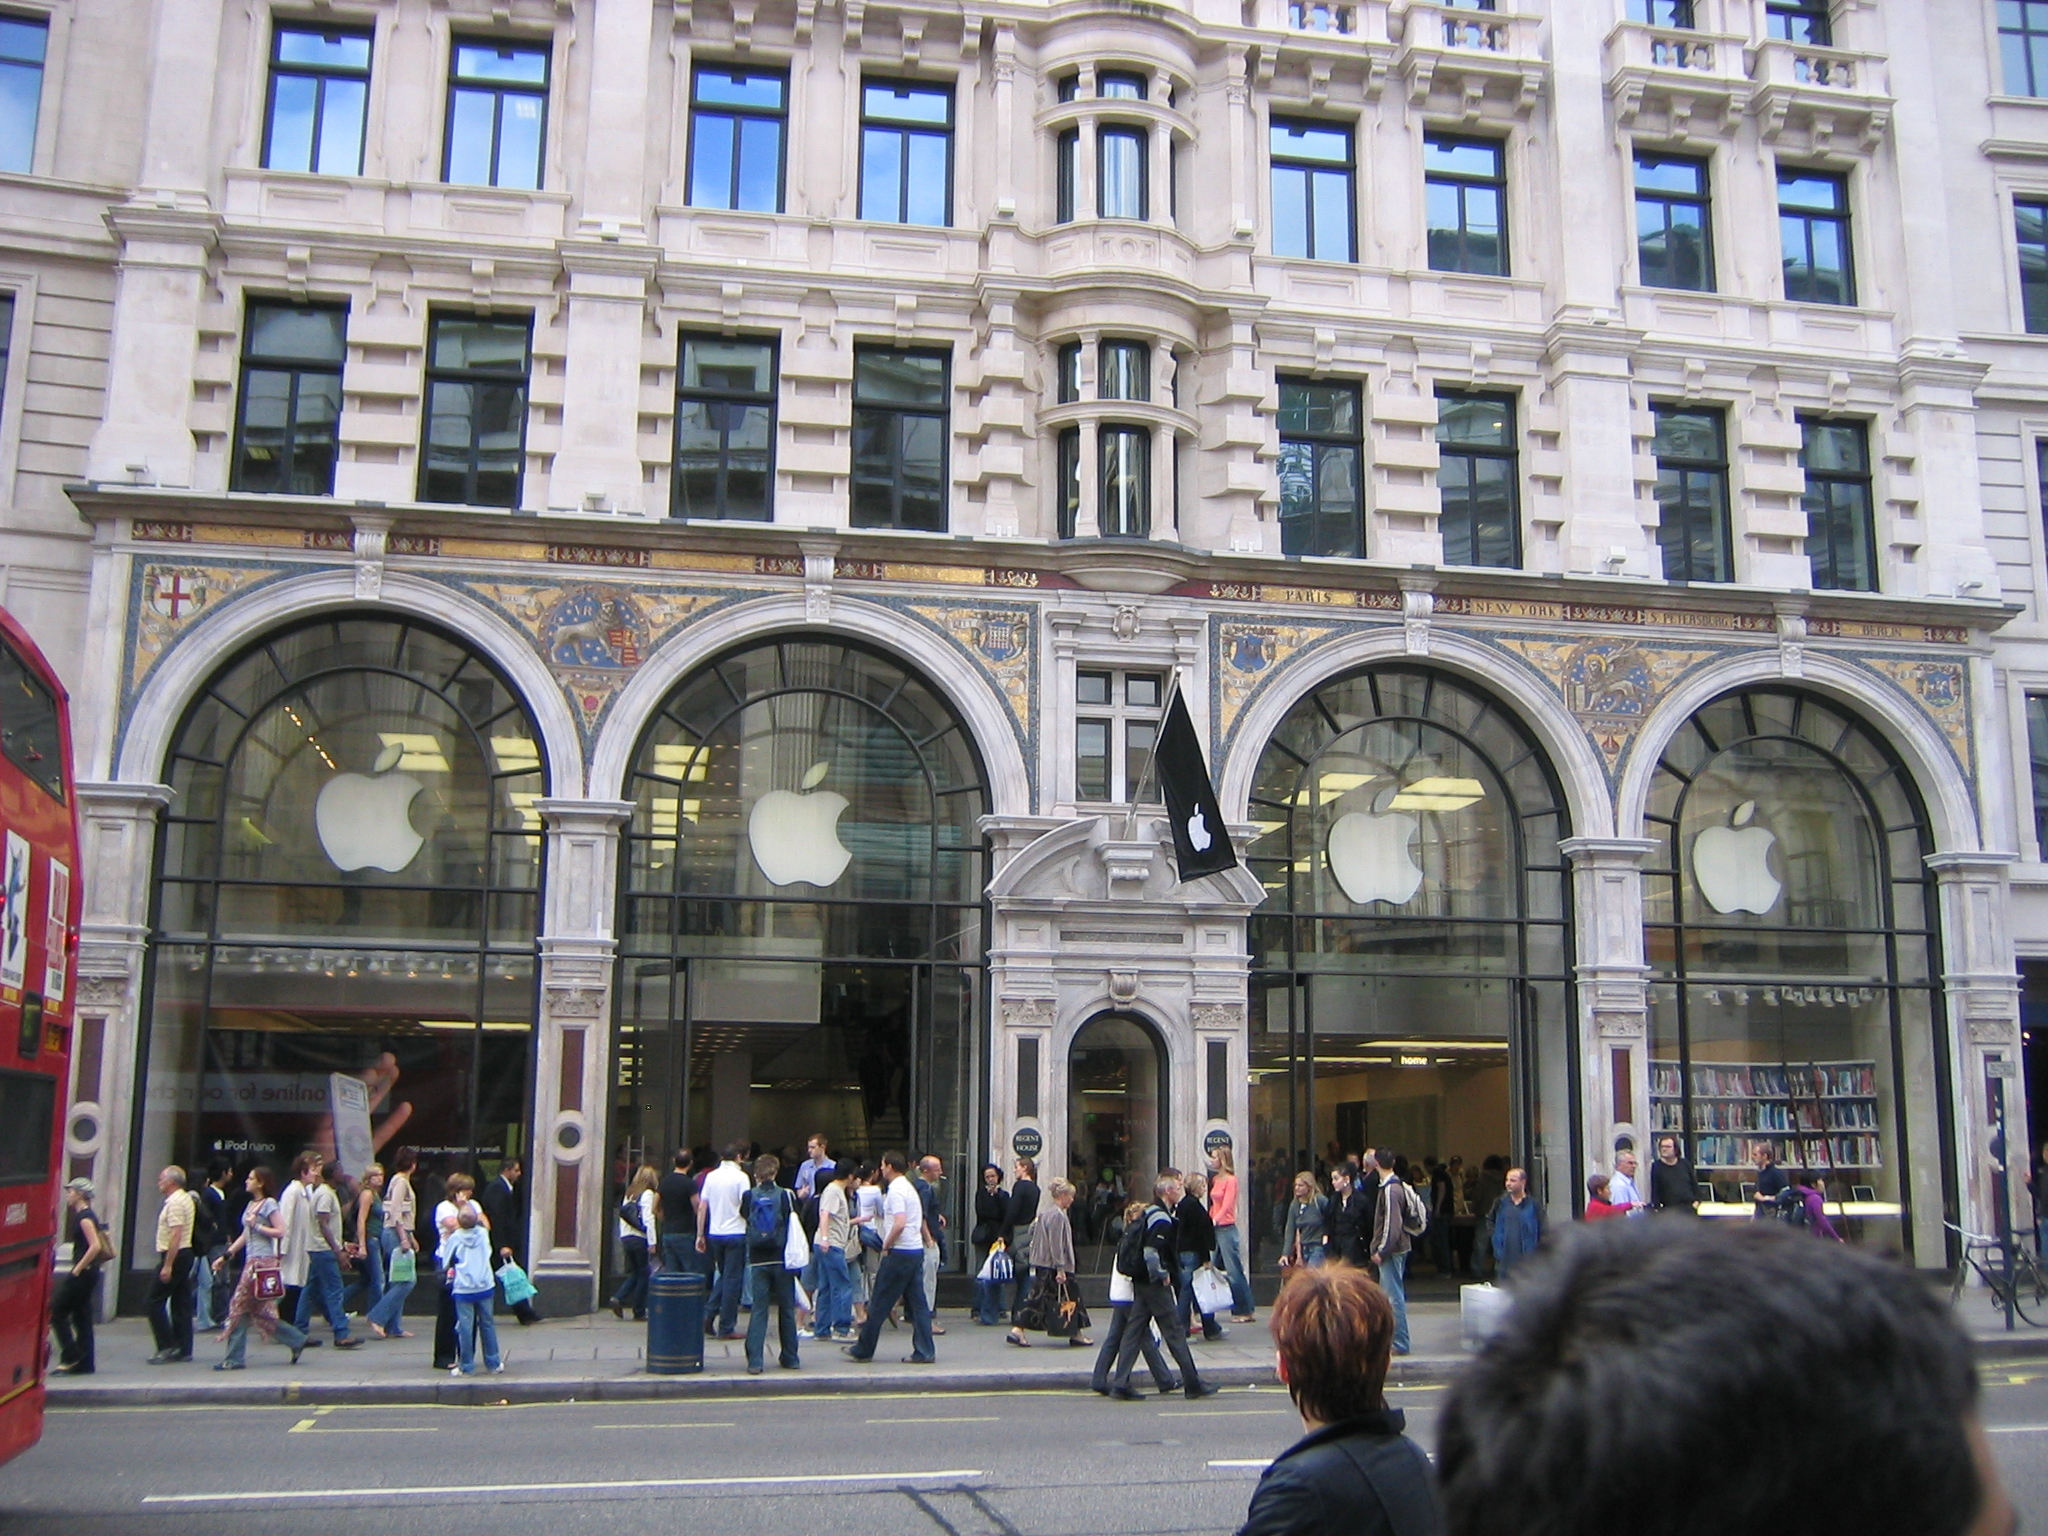 File:Apple Store Regent Street London UK-2005-09-24 jpg - Wikimedia